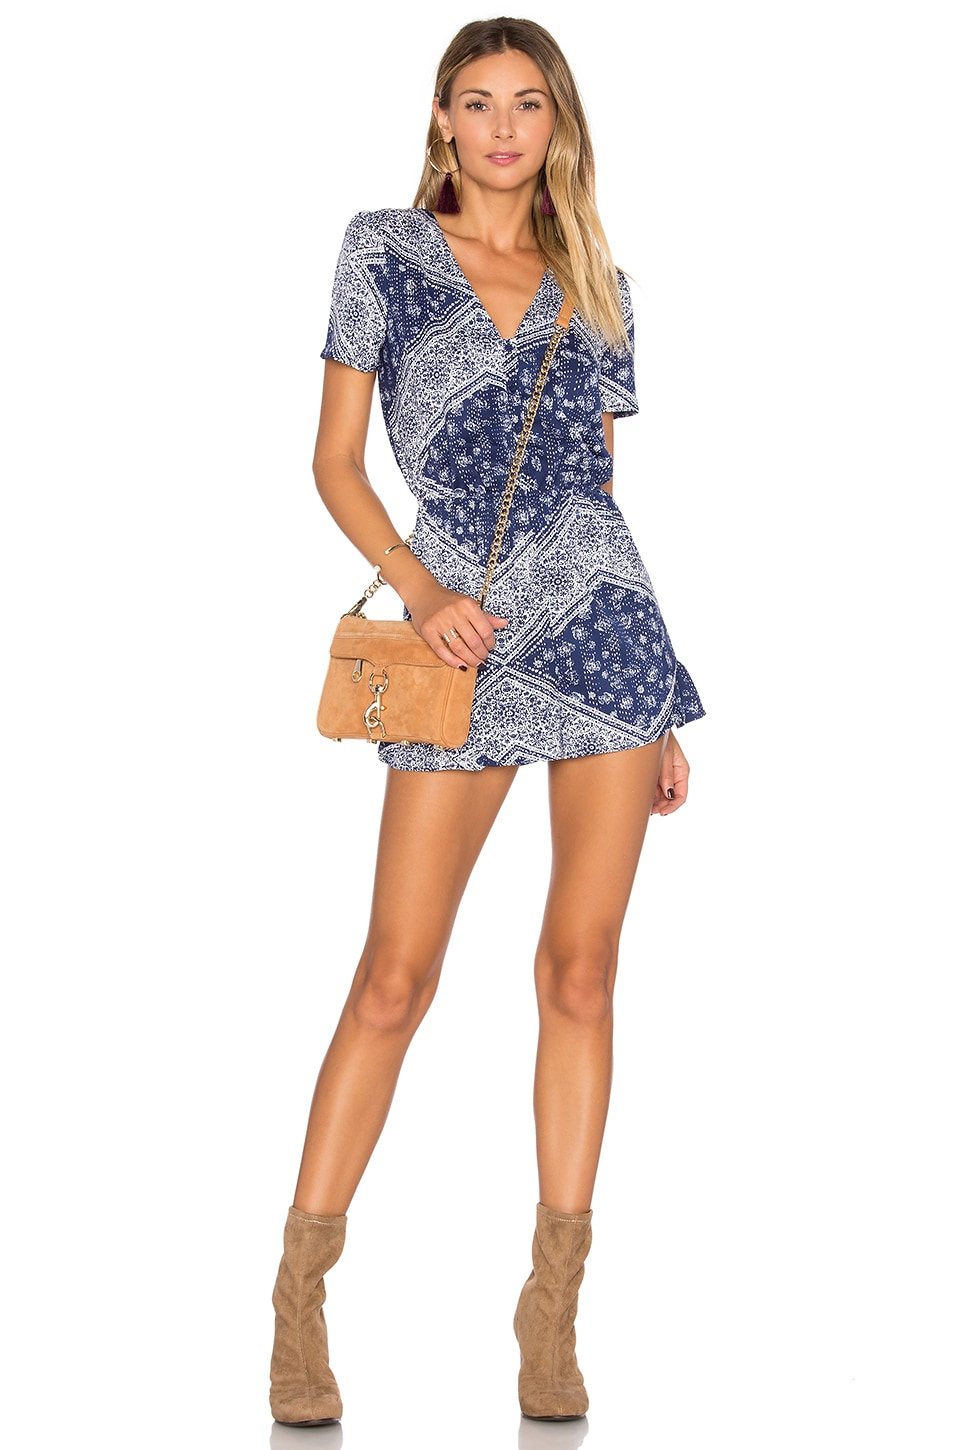 x REVOLVE Saturn Romper by Tularosa womens clothes online